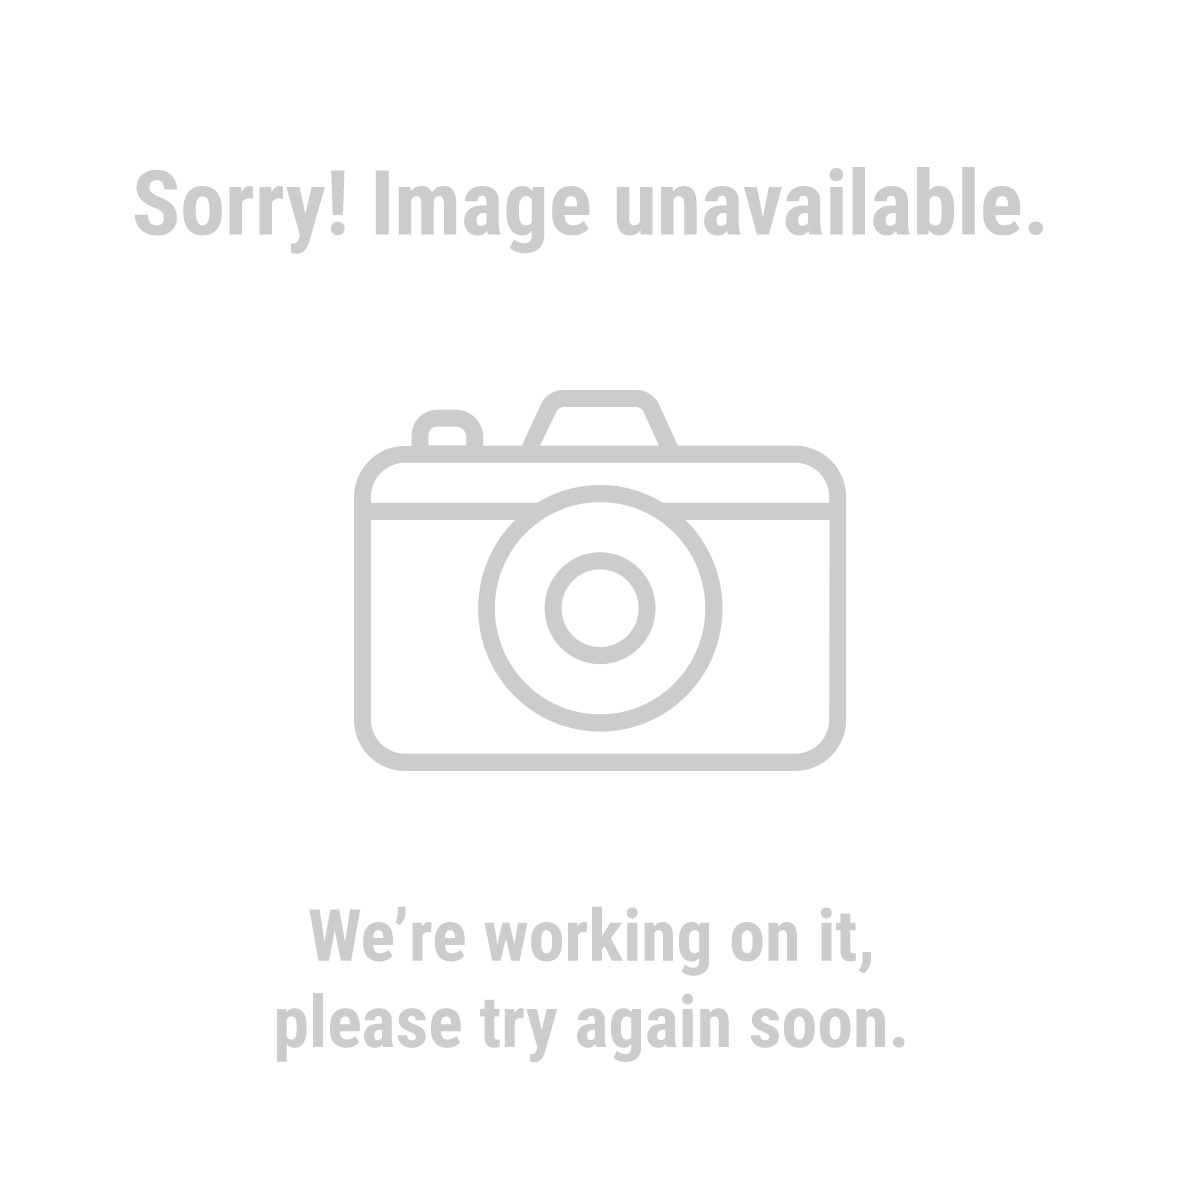 HFT® 60268 50 ft. x 14 Gauge Green Outdoor Extension Cord